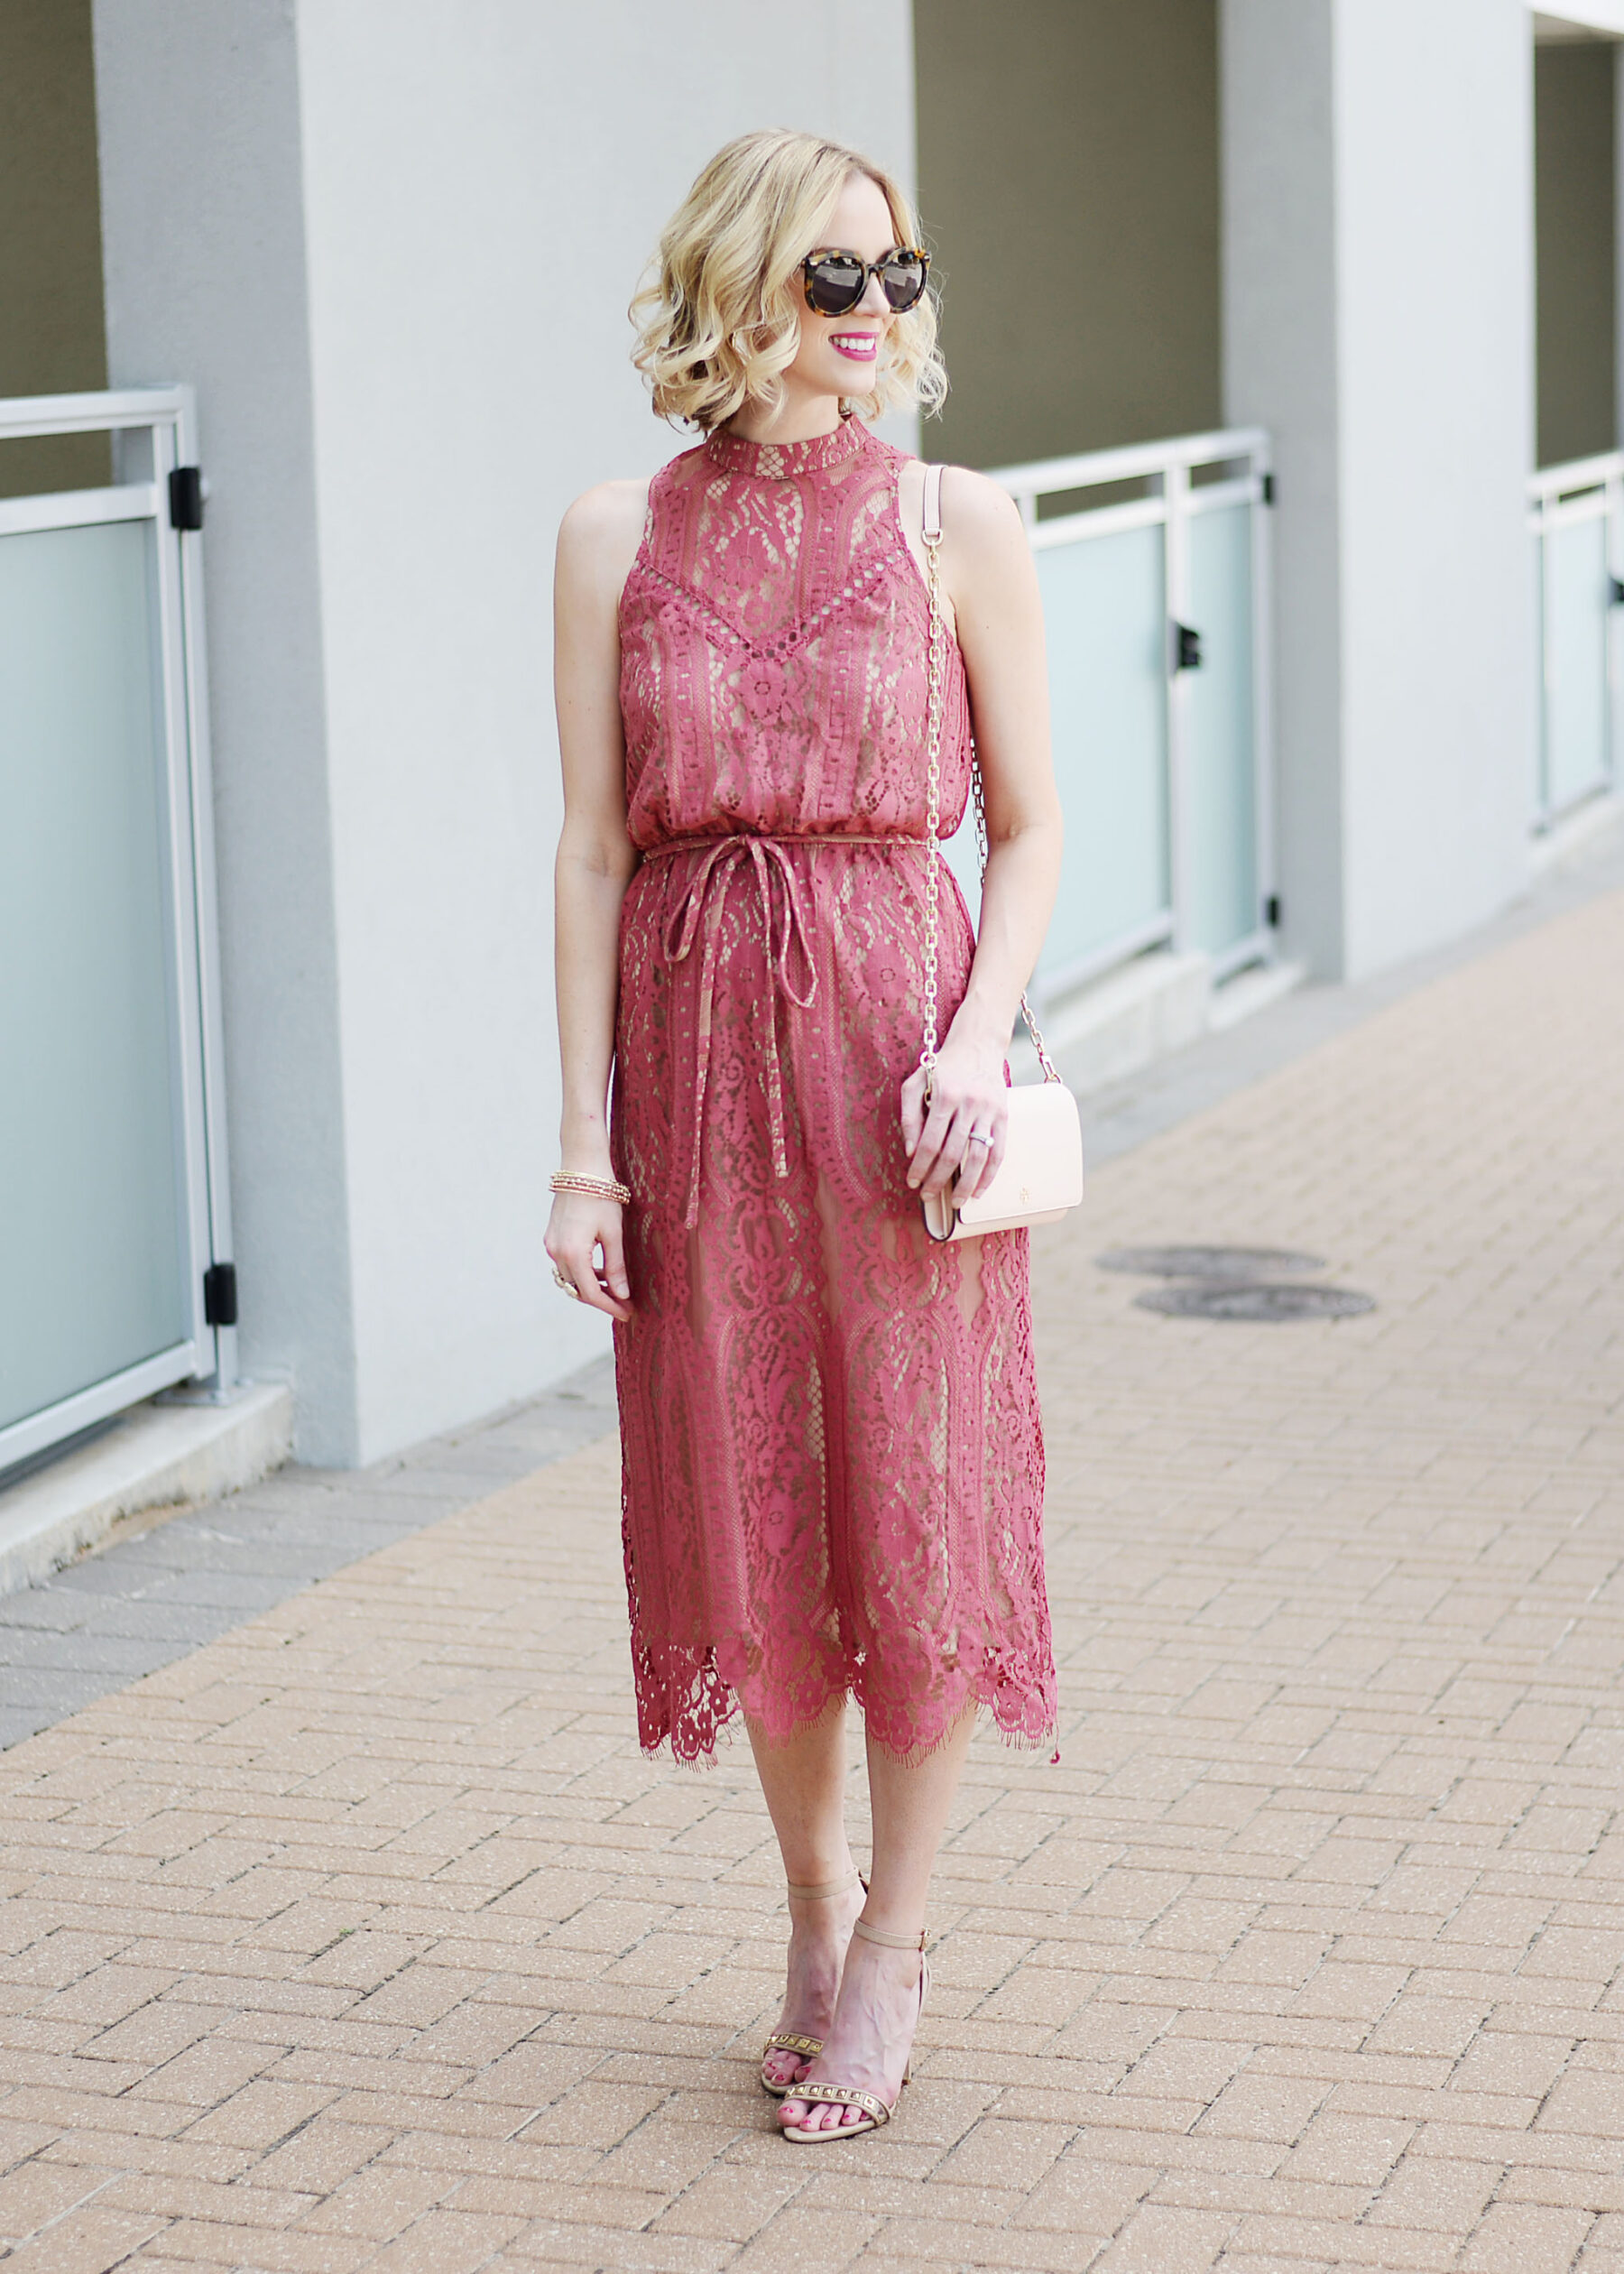 064137bd29f4 Why You Need A Berry Colored Lace Midi Dress - Straight A Style